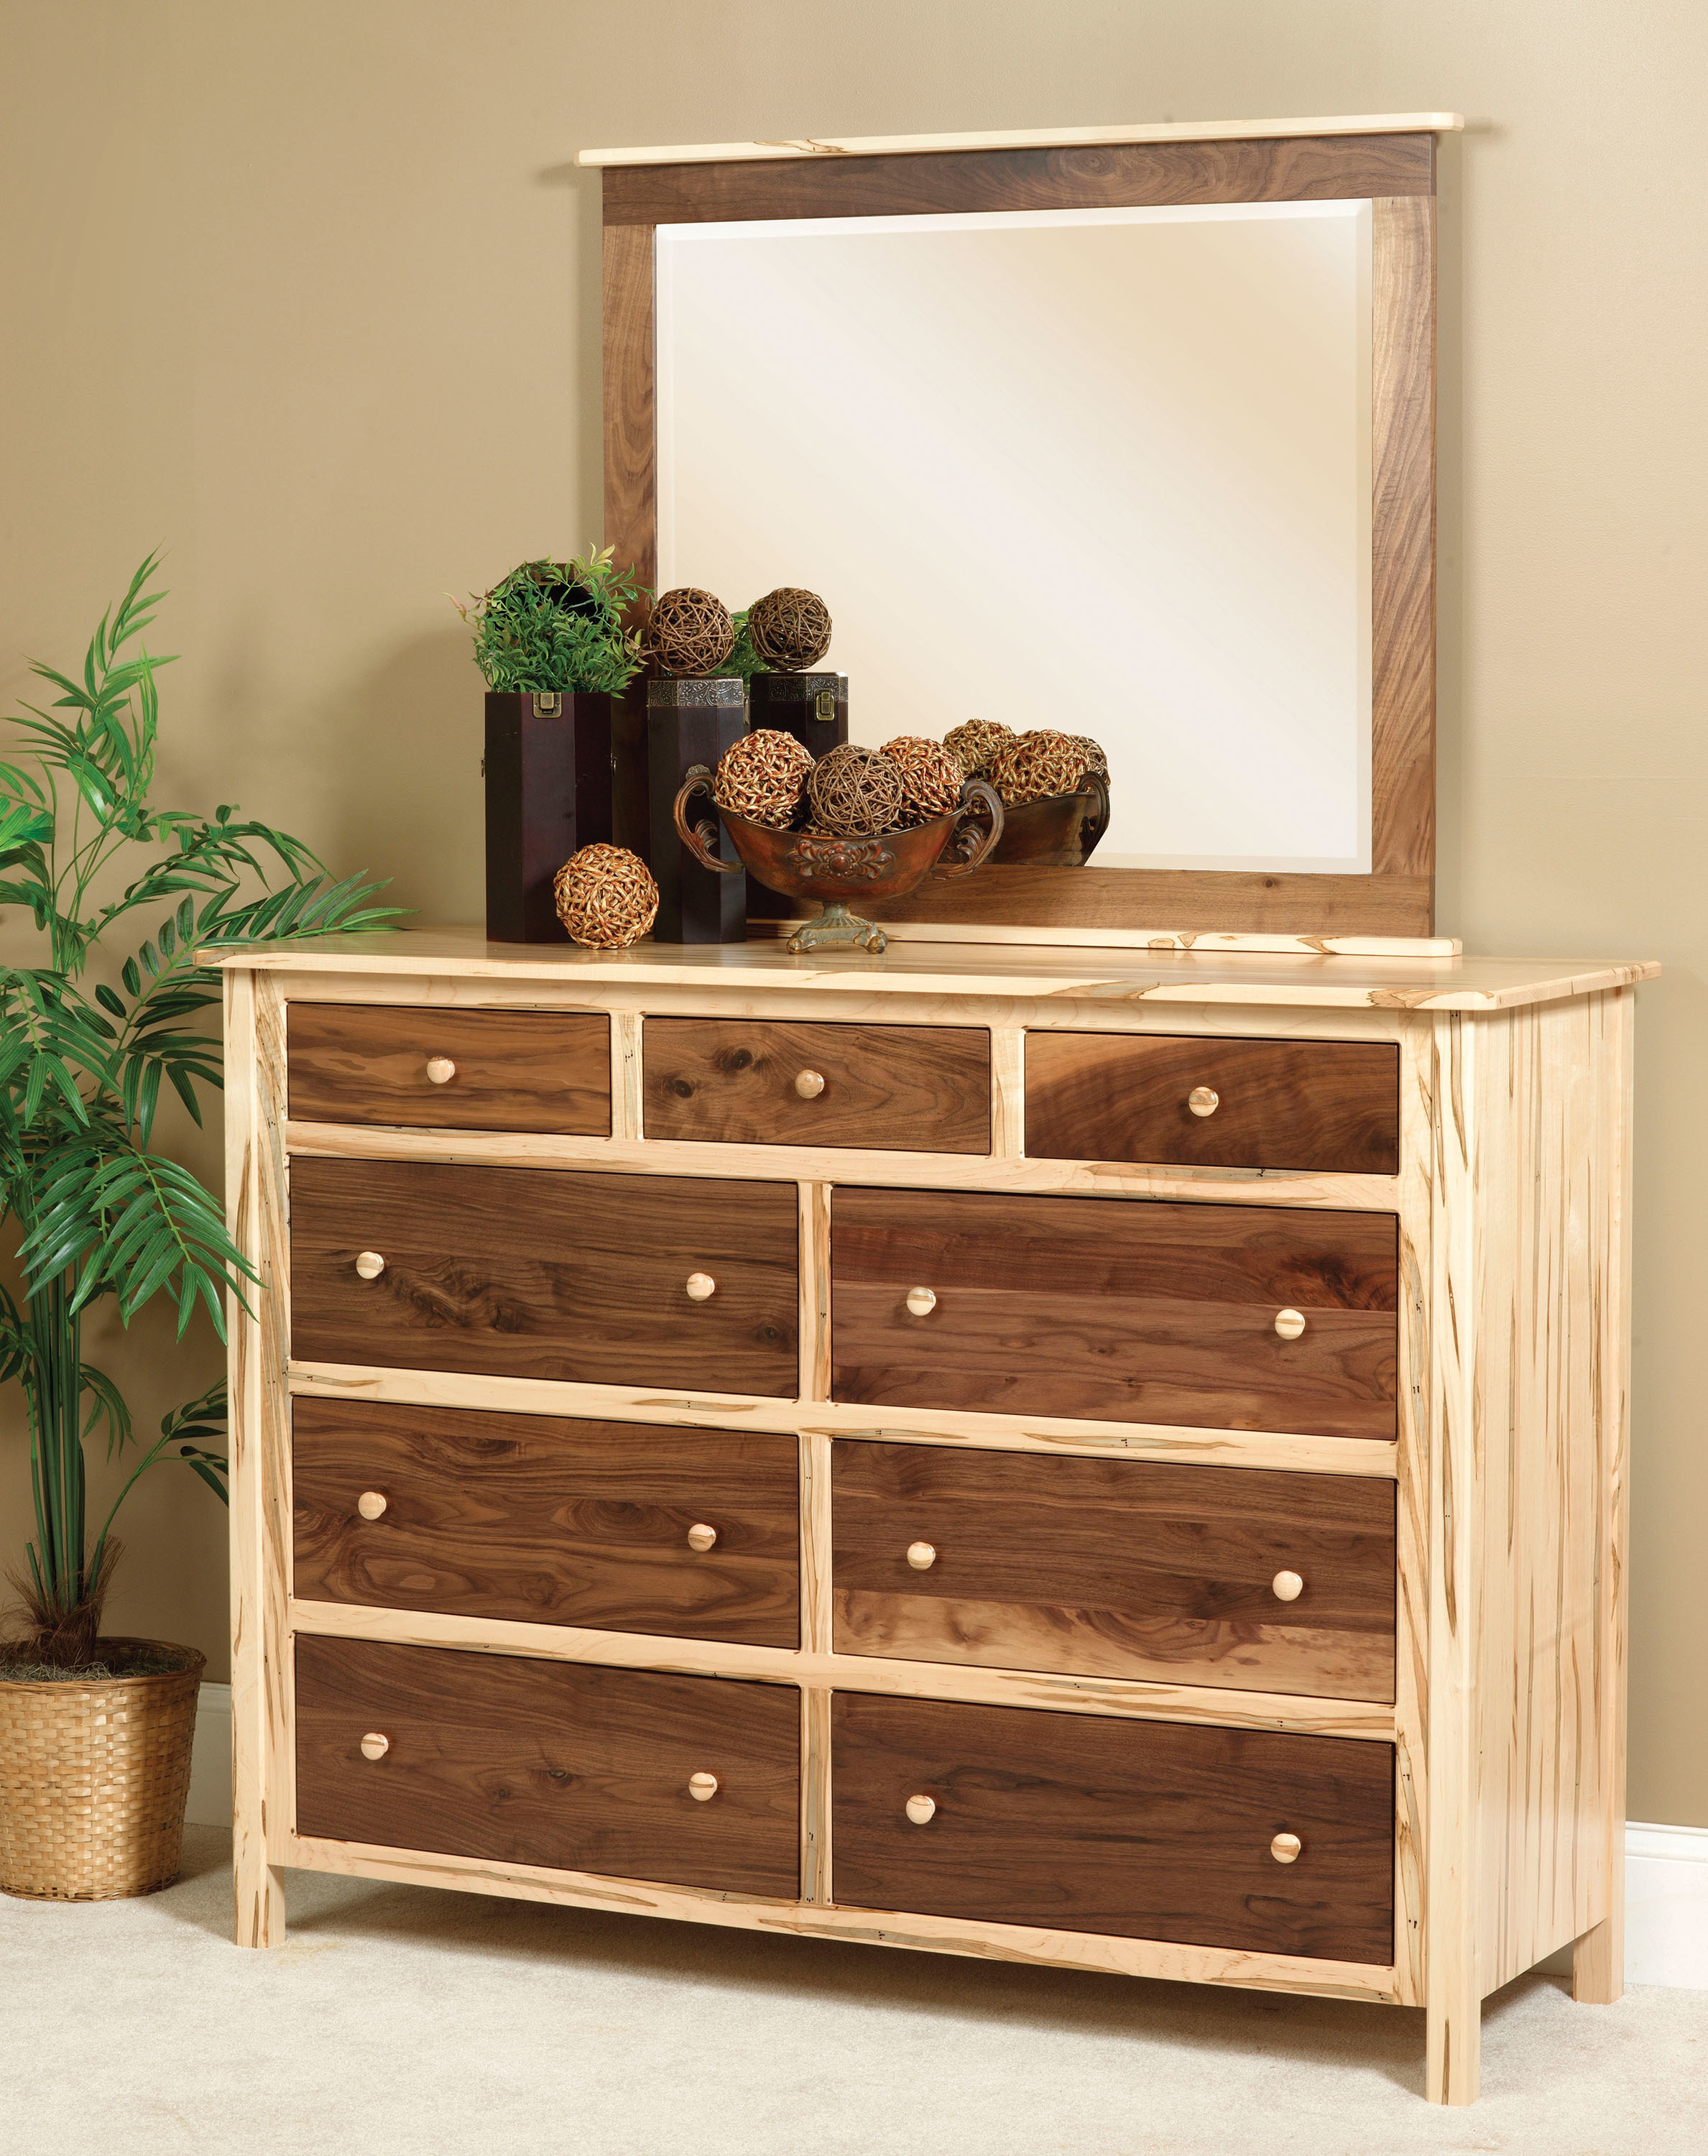 Cornwell High Dresser by Farmside Wood 8